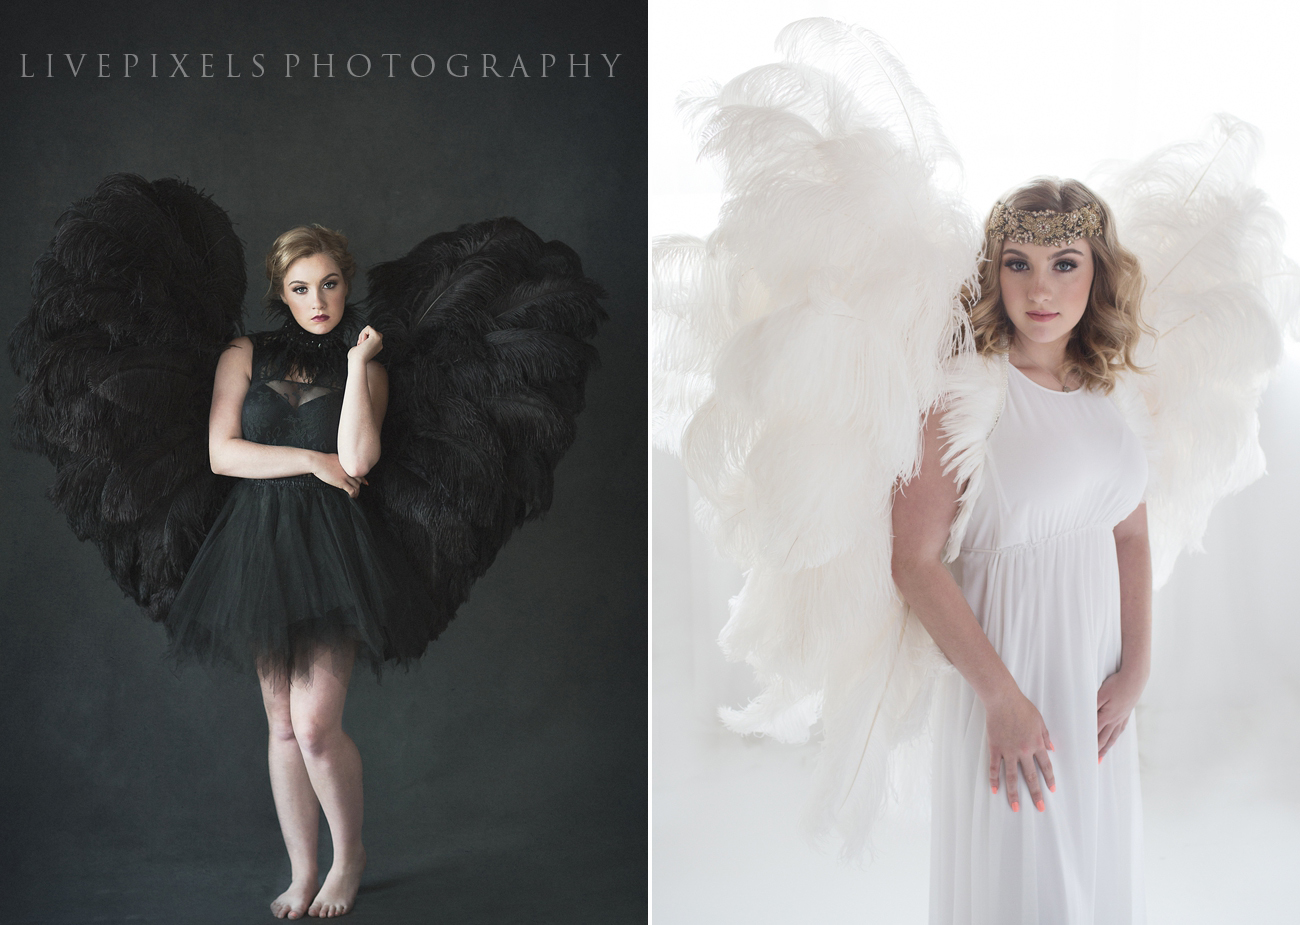 Creative Portrait with black and white ostrich feather wings by Toronto Portrait Photographer - Livepixels Photography, Toronto / livepixelsphotography.com